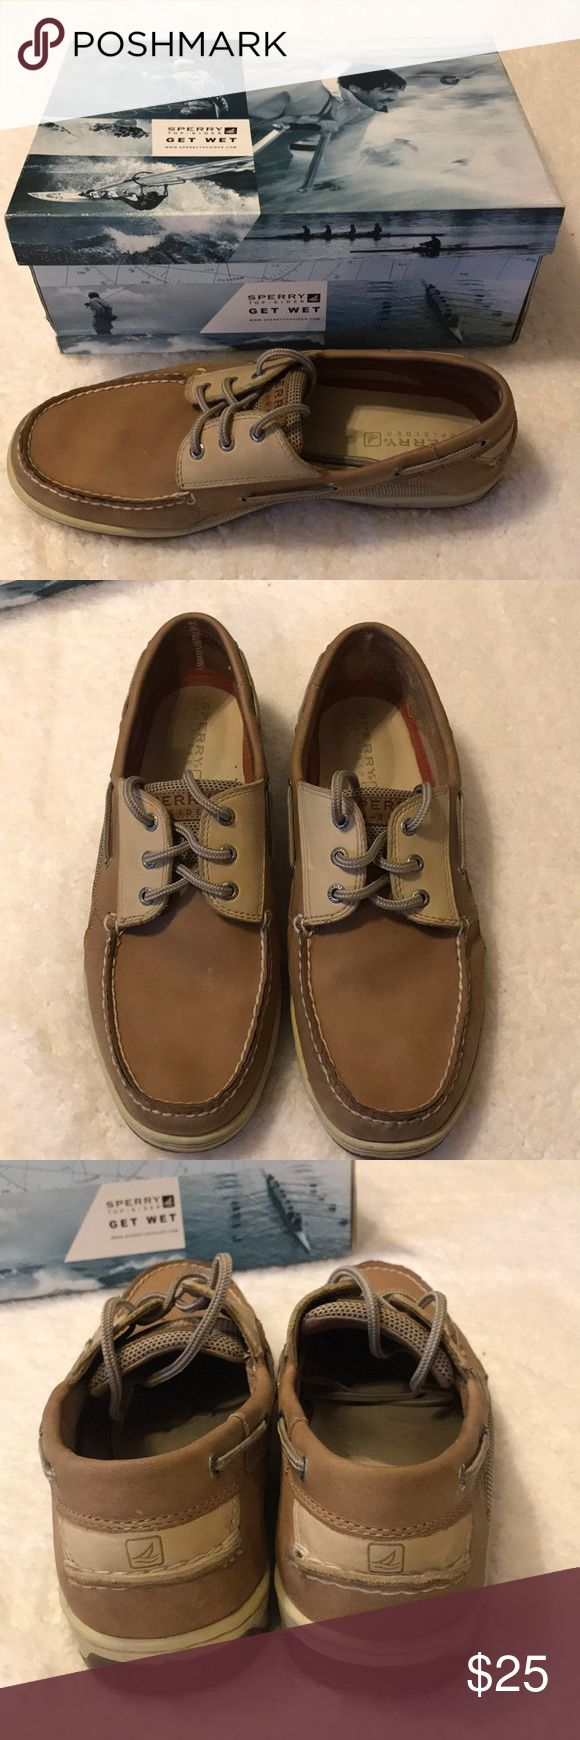 SPERRY TOP-SIDER Men's Sperry Top-Sider  Billfish Tan/Beige Size: 13 In Box Pre-Owned in great condition Sperry Top-Sider Shoes Loafers & Slip-Ons